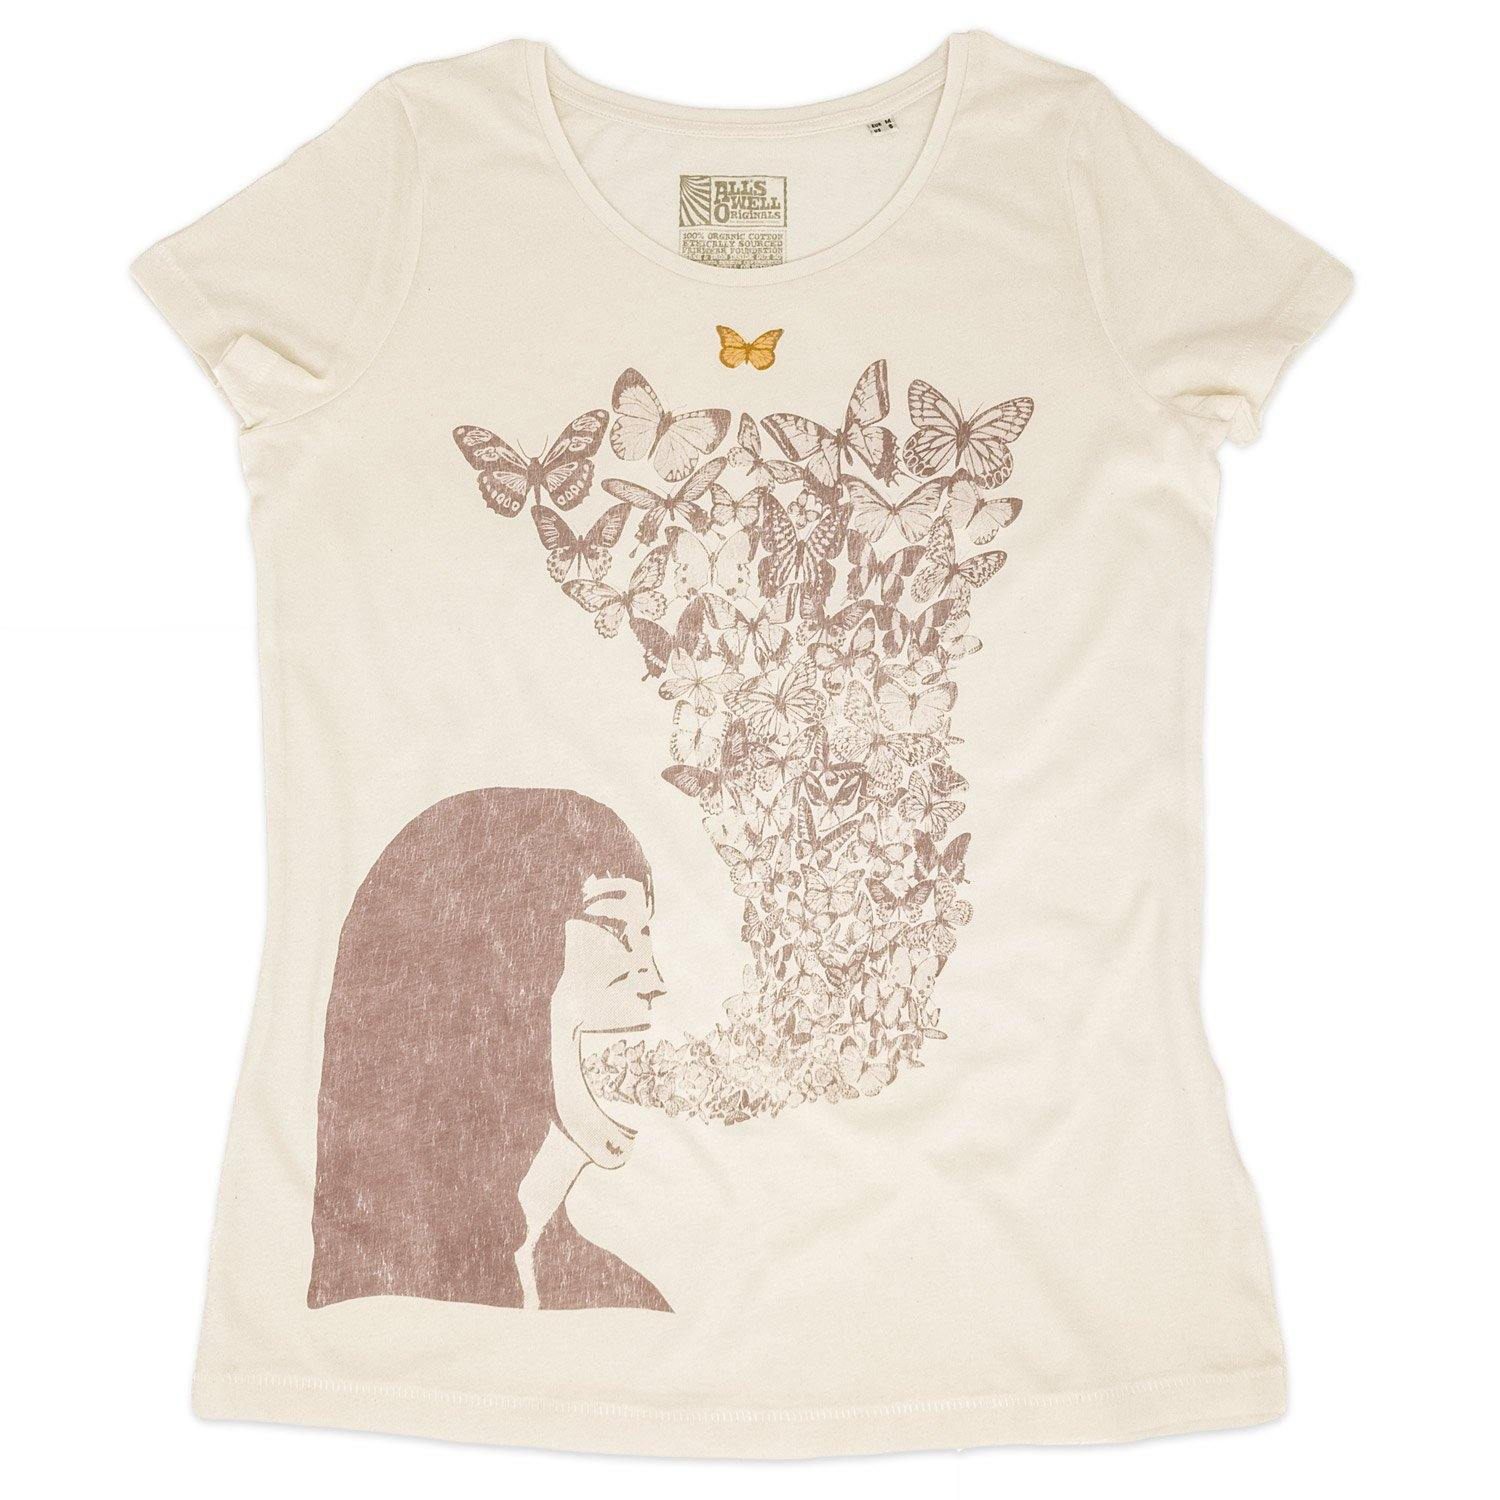 Butterfly t-shirt hand printed 100% organic cotton t-shirt